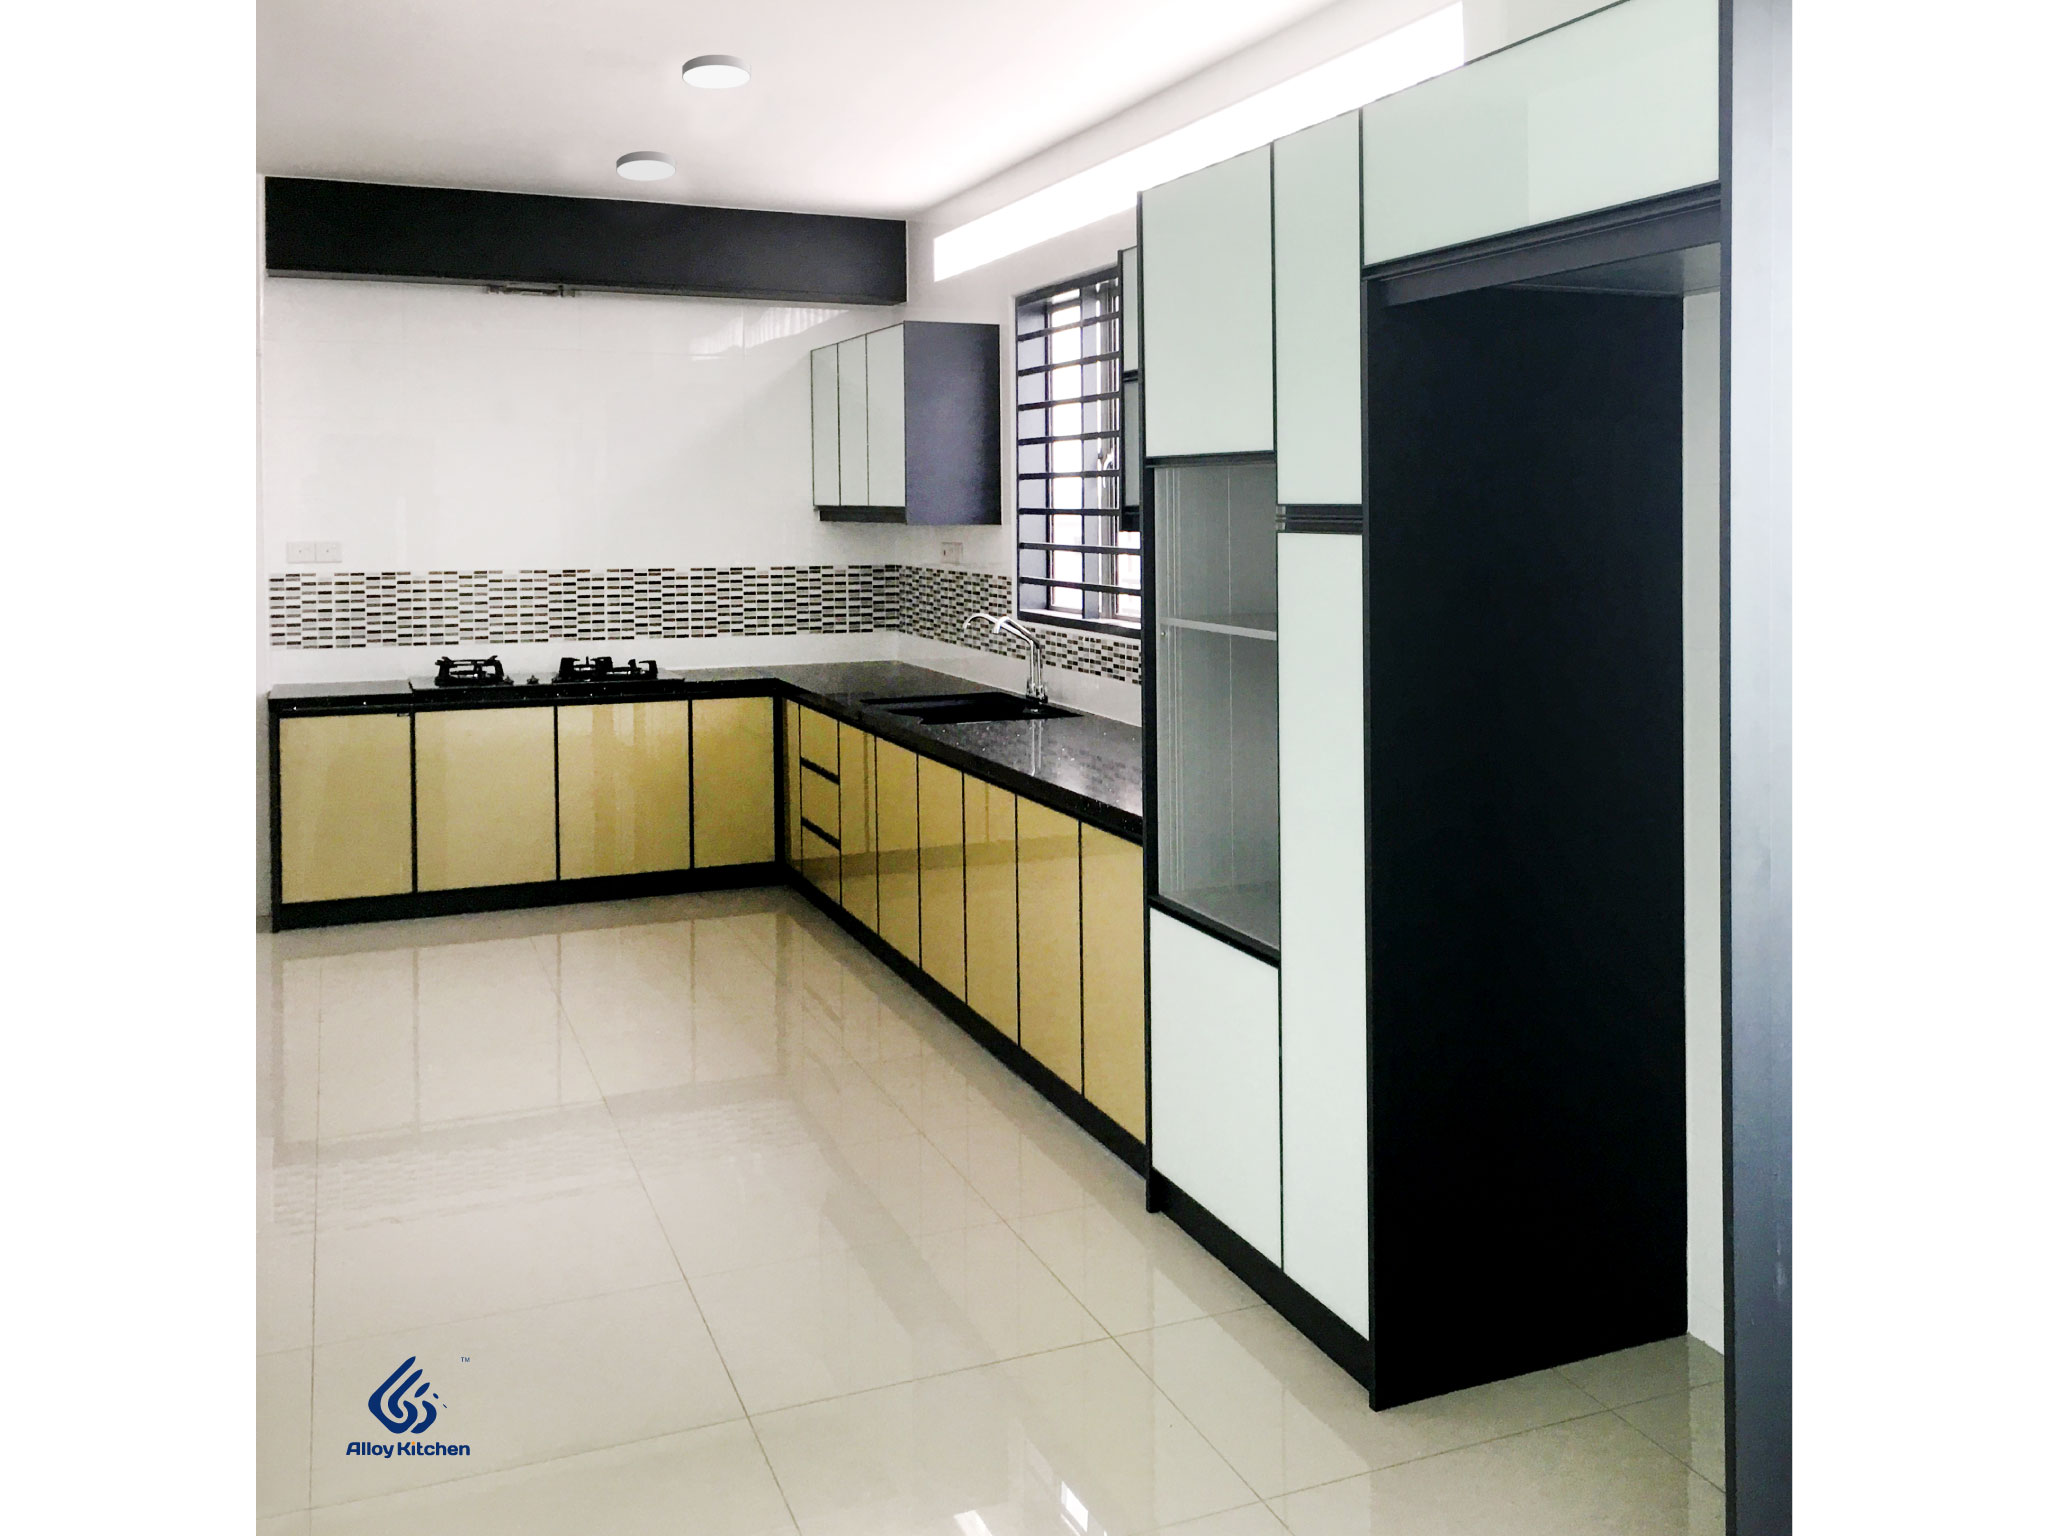 Alloy_Kitchen_Aluminium_Kitchen_Cabinet / Alloy Kitchen Aluminium Kitchen Cabinet